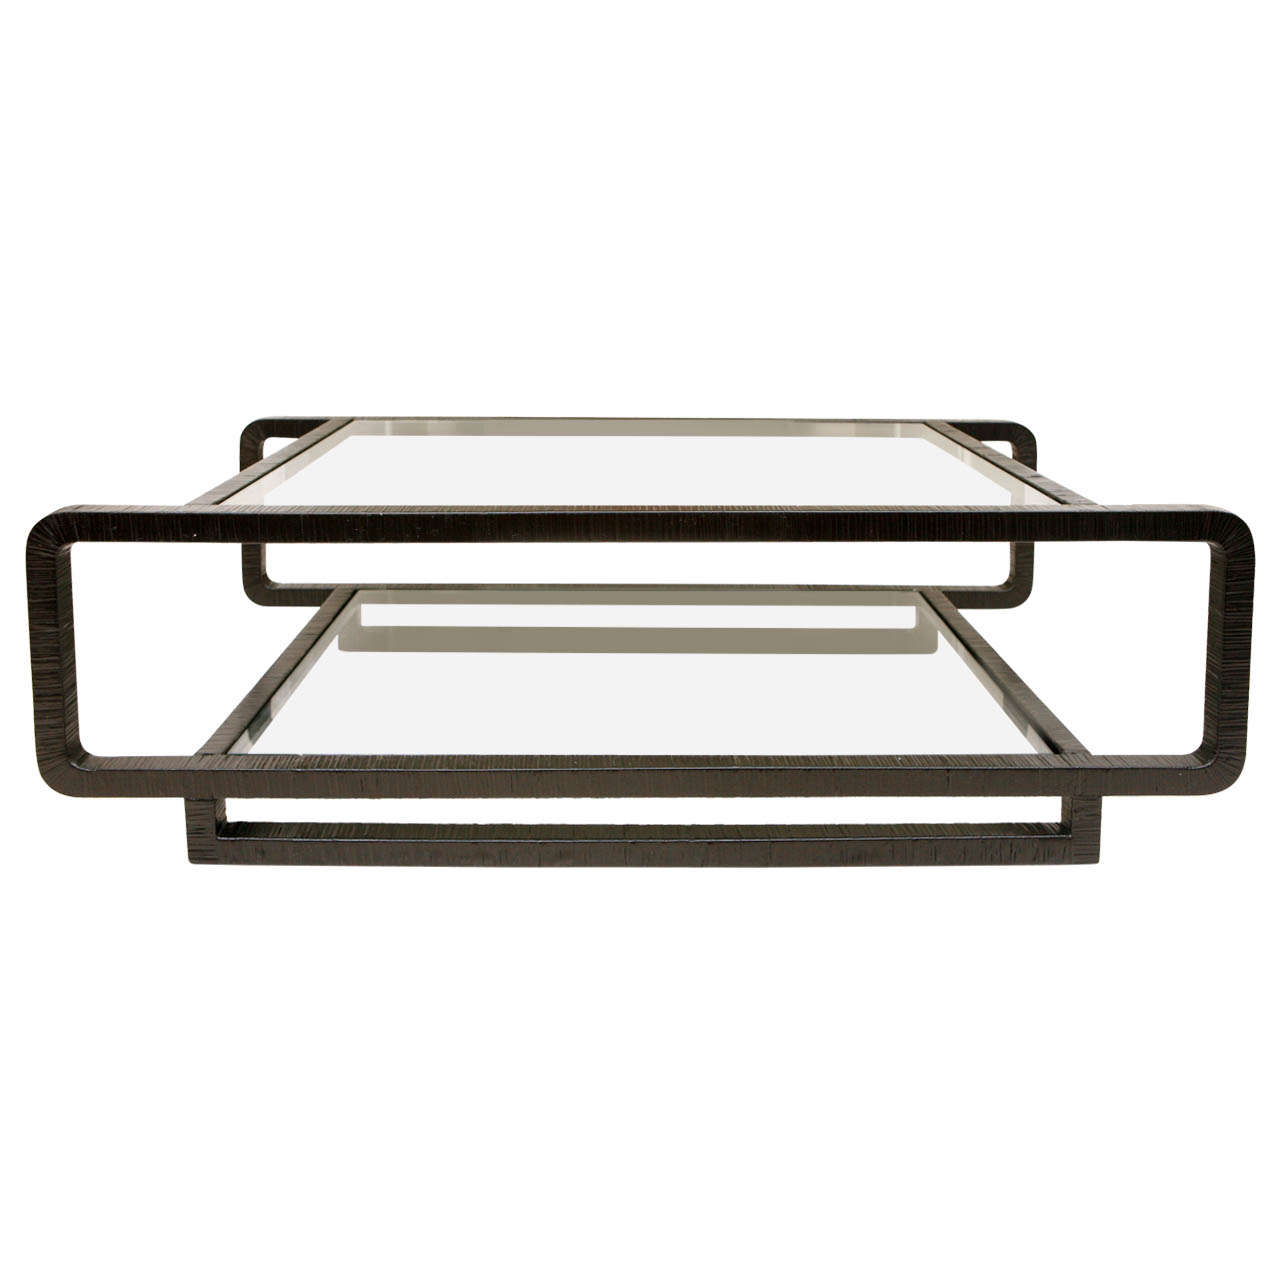 Vintage Cane And Glass Coffee Table At 1stdibs